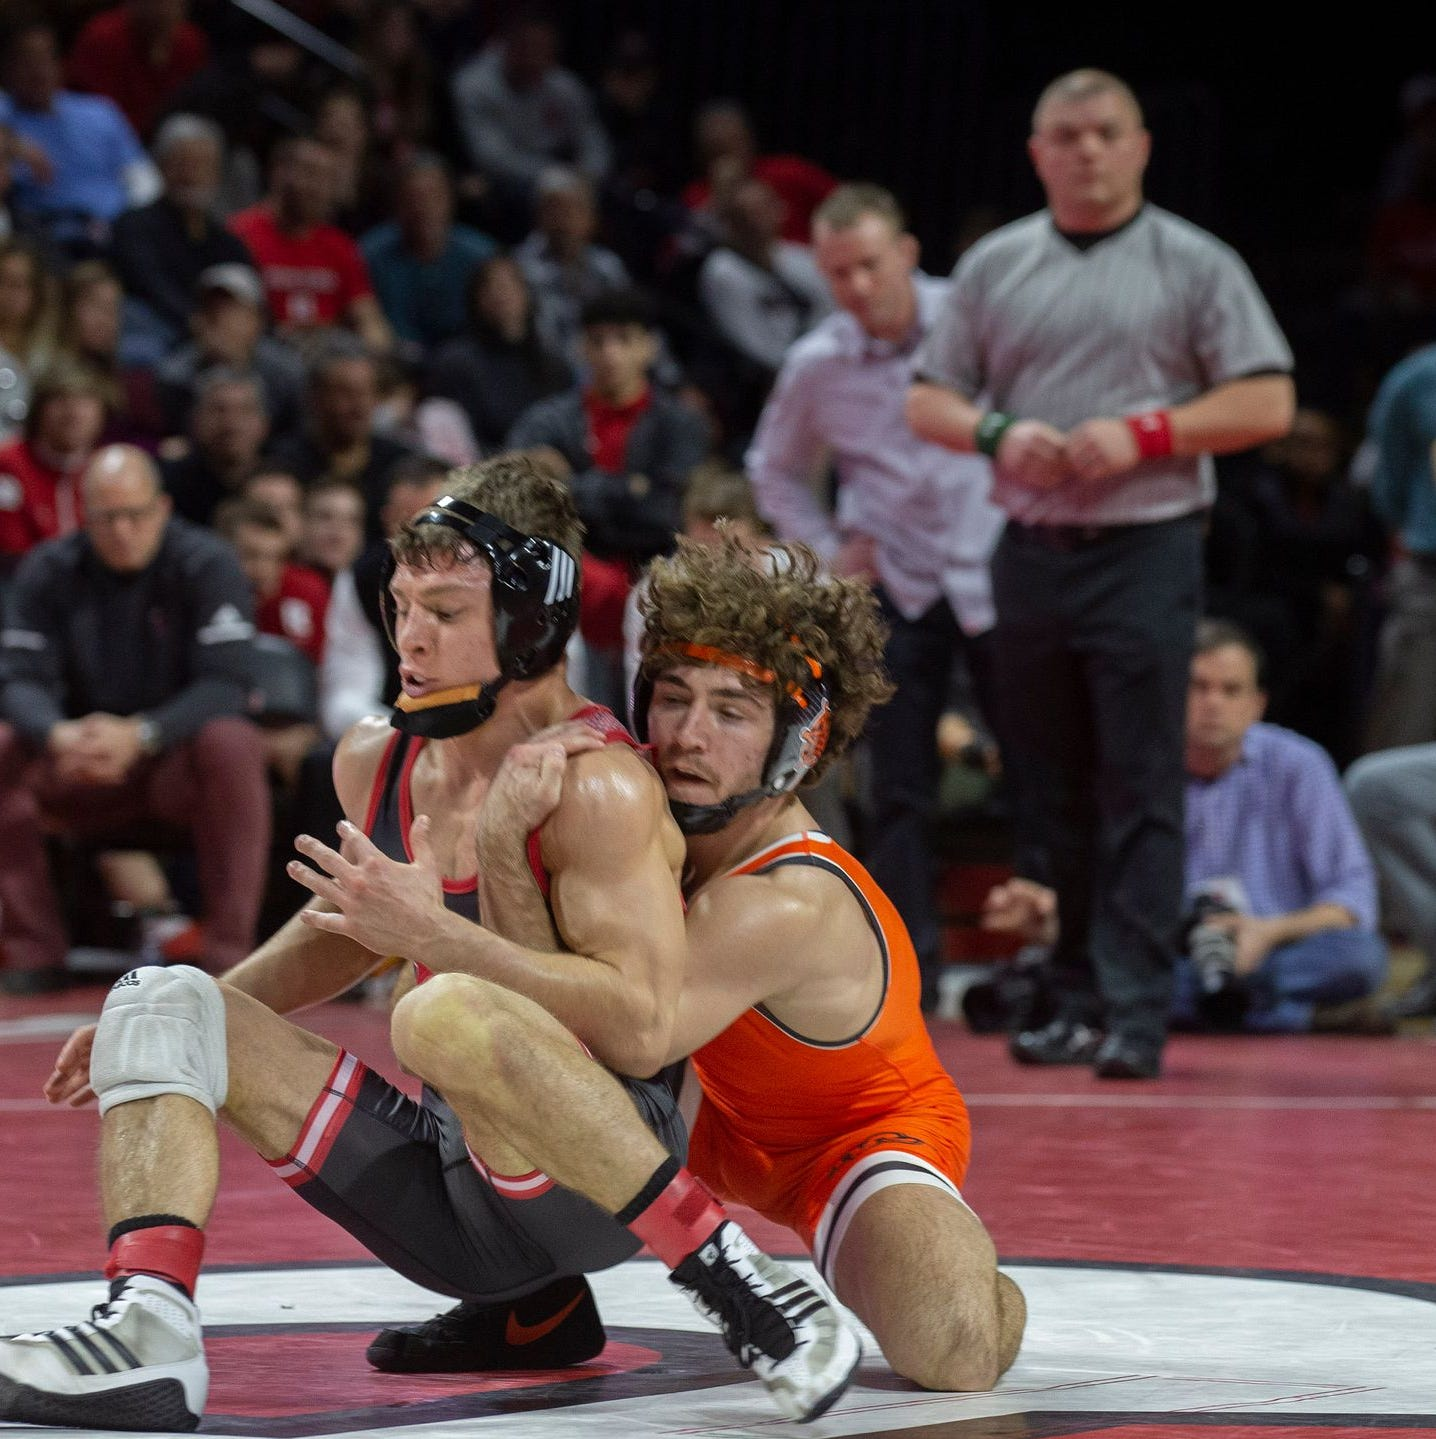 Rutgers wrestling: Nick Suriano vs. Stevan Micic highlights No. 4 Michigan visiting